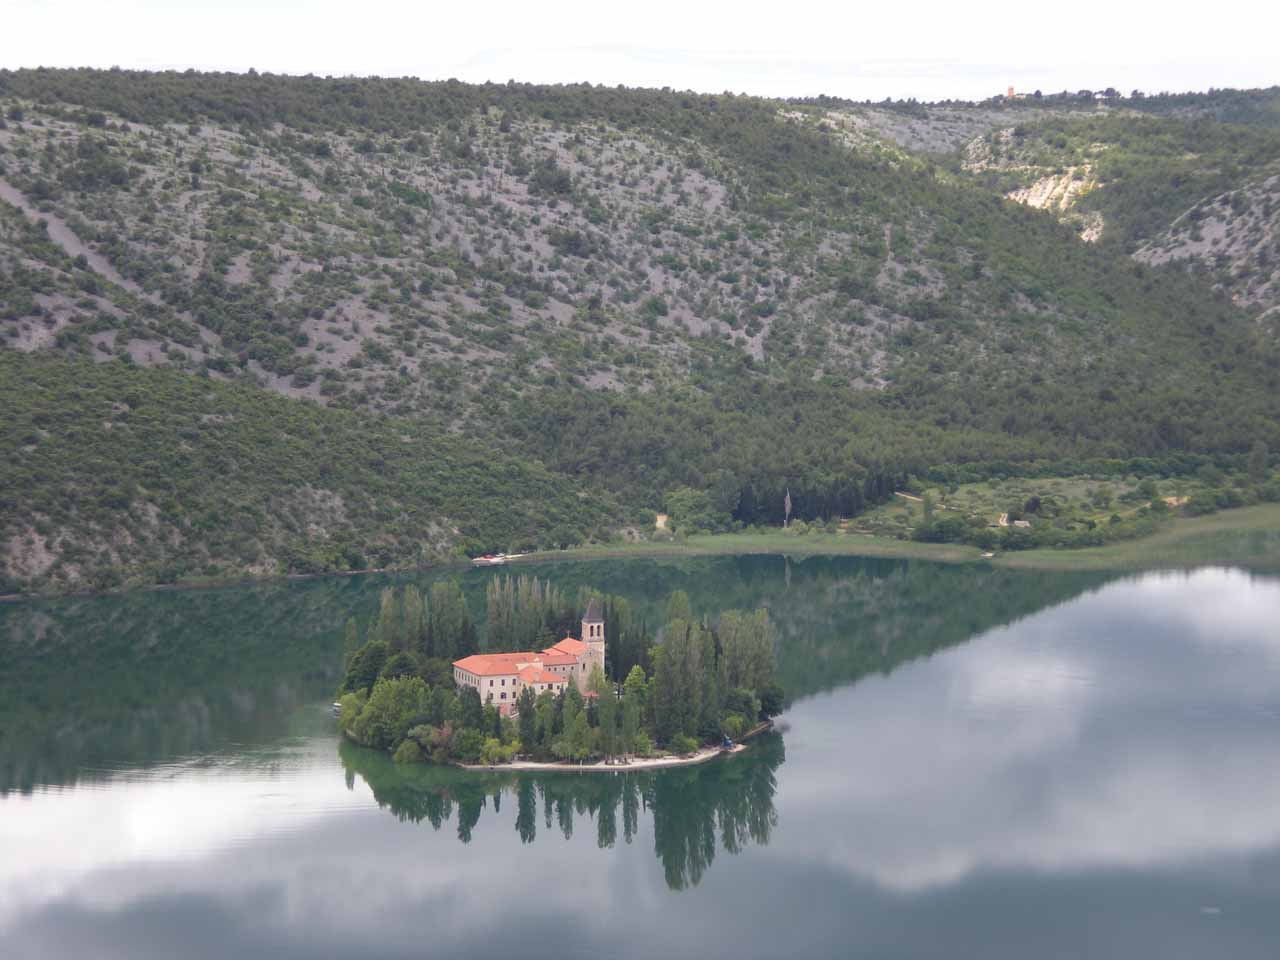 As we were driving between Roski Slap and Skradin, we saw this island monastery called Visovac